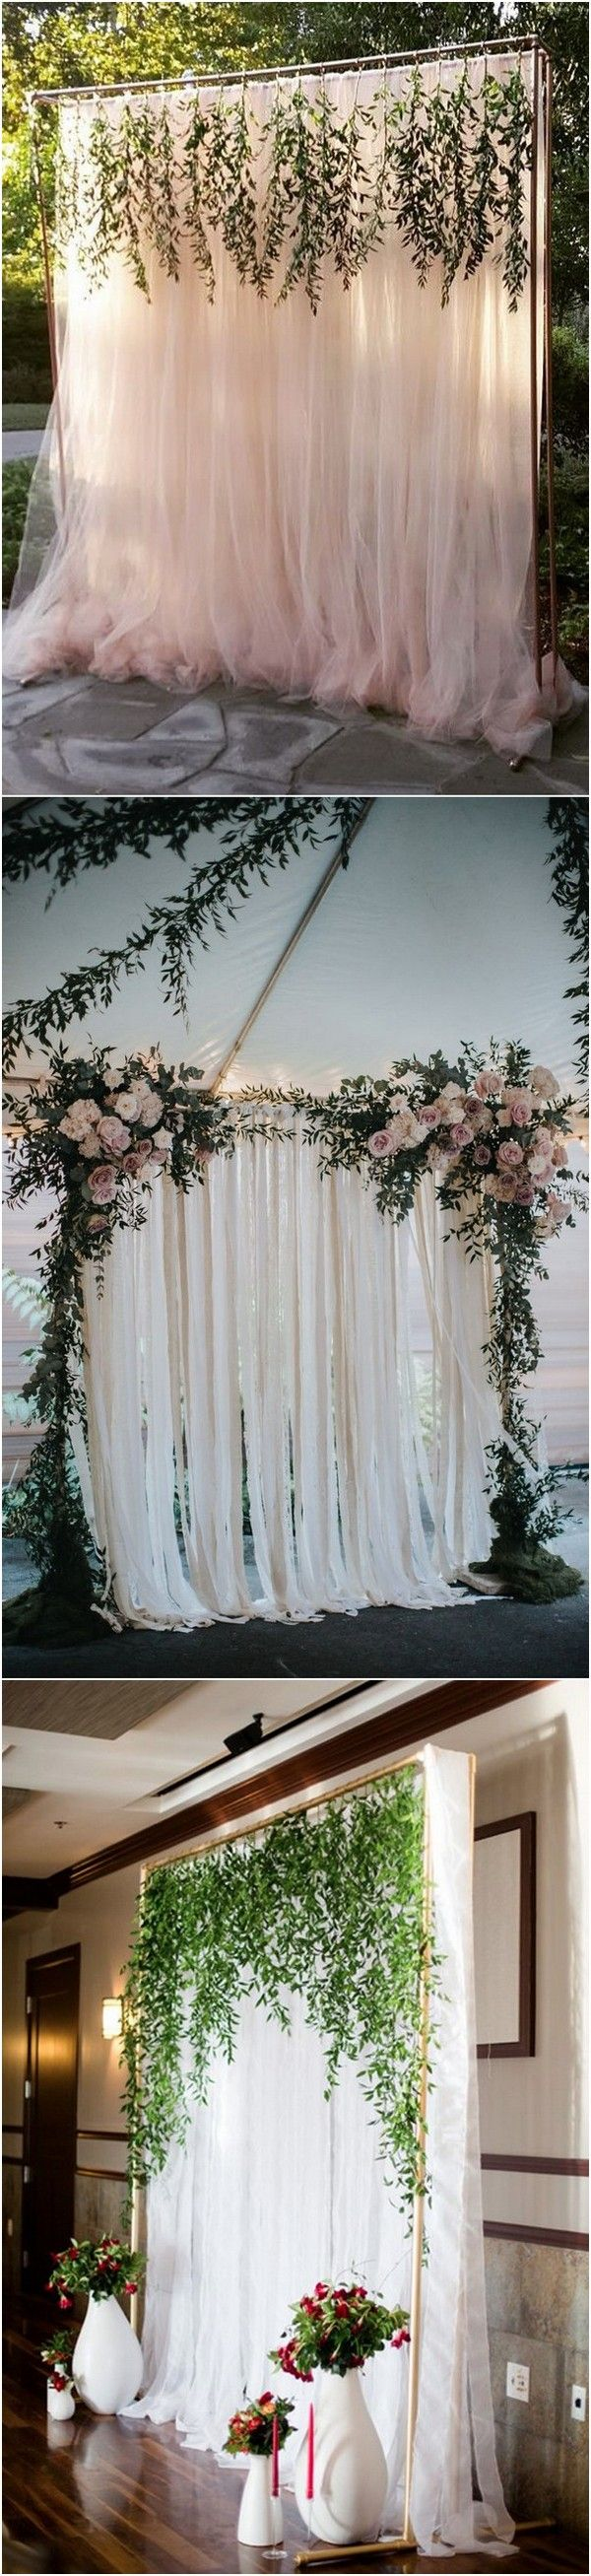 Trending 15 Hottest Wedding Backdrop Ideas For Your Ceremony Page 2 Of 3 Oh Best Day Ever Outdoor Wedding Backdrops Diy Wedding Decorations Outdoor Wedding